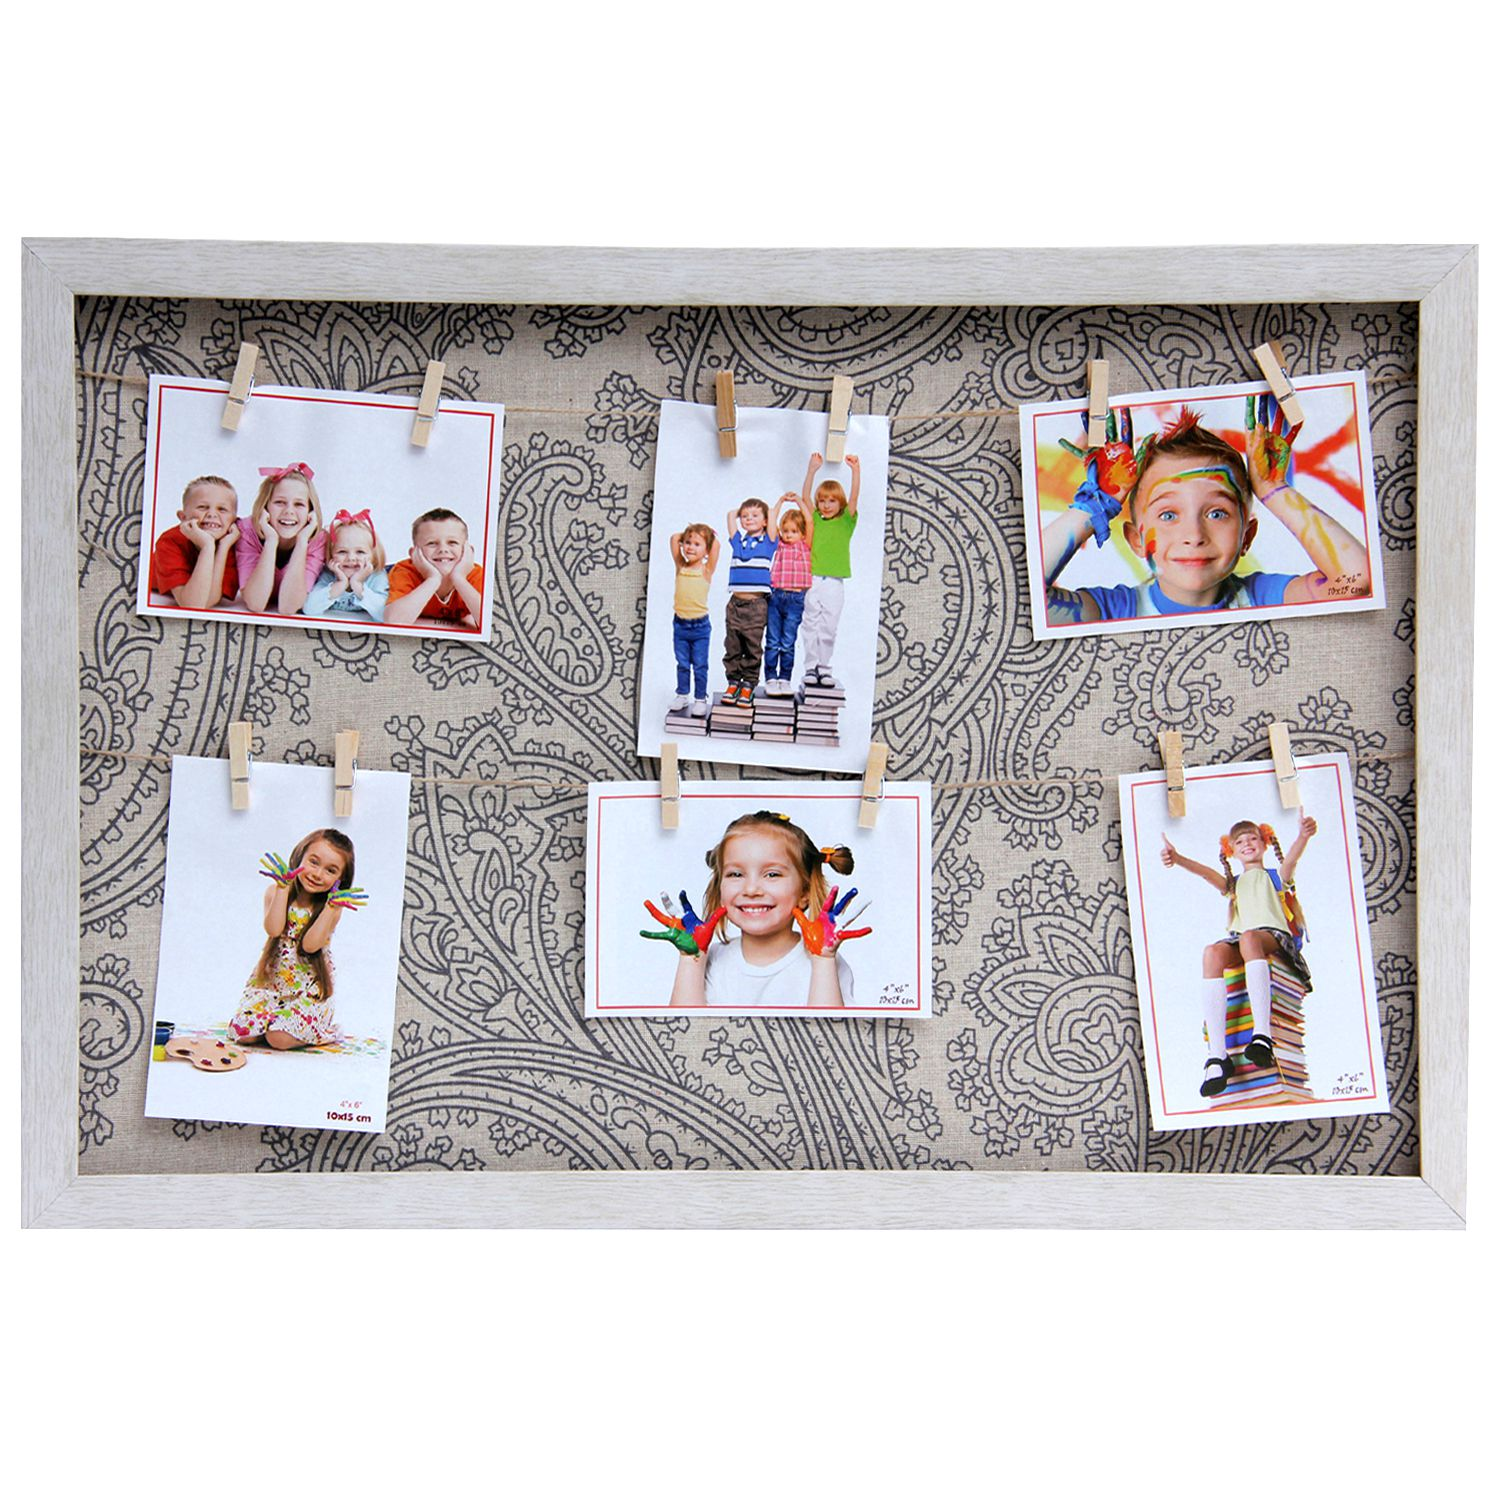 Tayhaa Wood Table Top & Wall hanging Beige Collage Photo Frame - Pack of 1